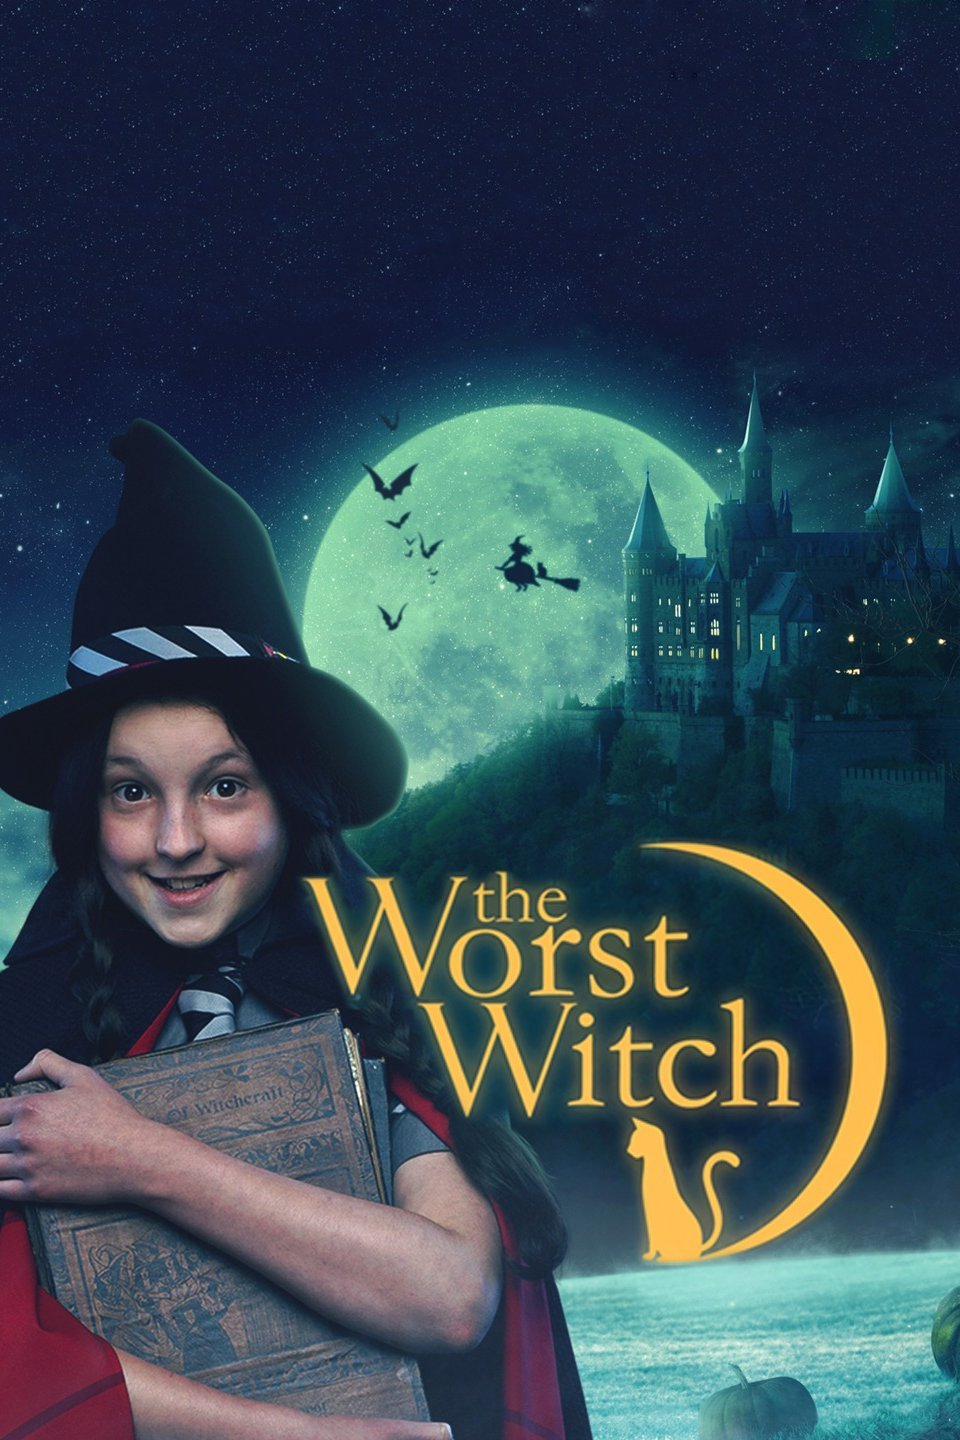 The Worst Witch S01 E07